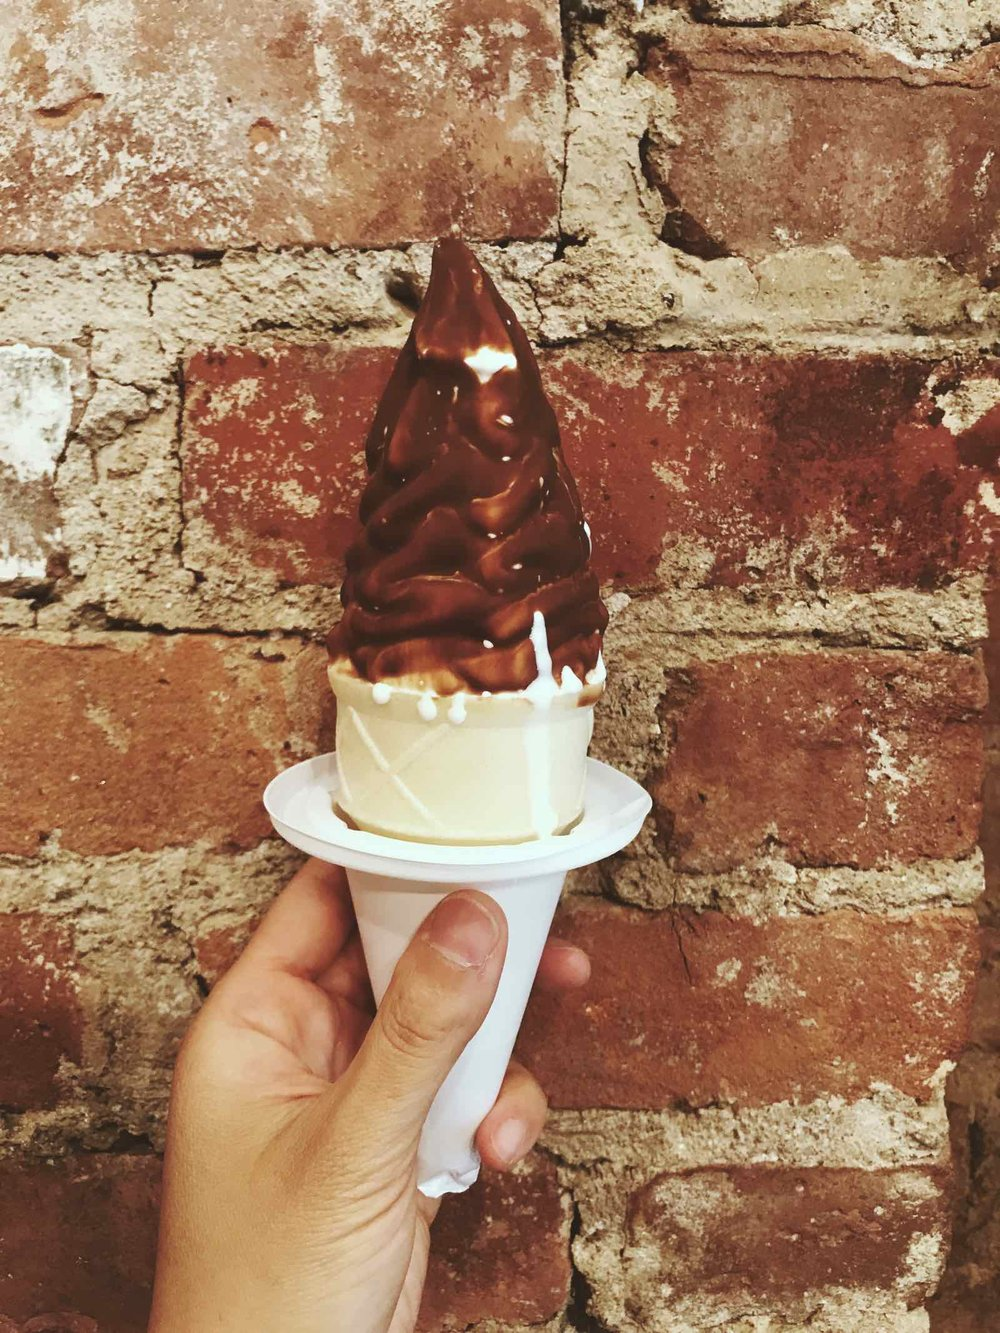 Gluten-Free-Soft-Serve-Ice-Cream-Cone.jpg